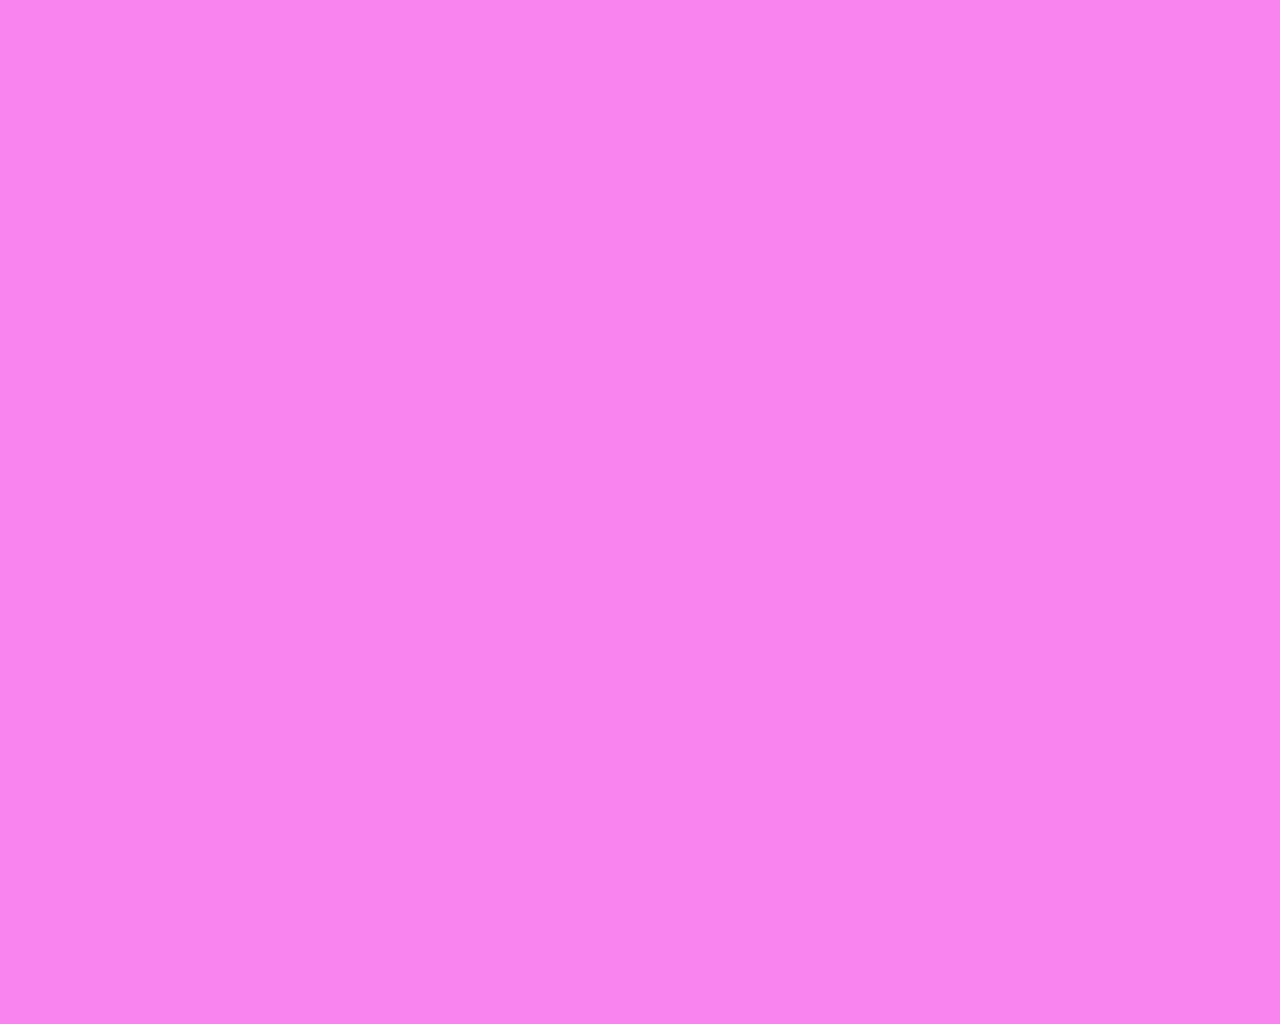 1280x1024 Light Fuchsia Pink Solid Color Background